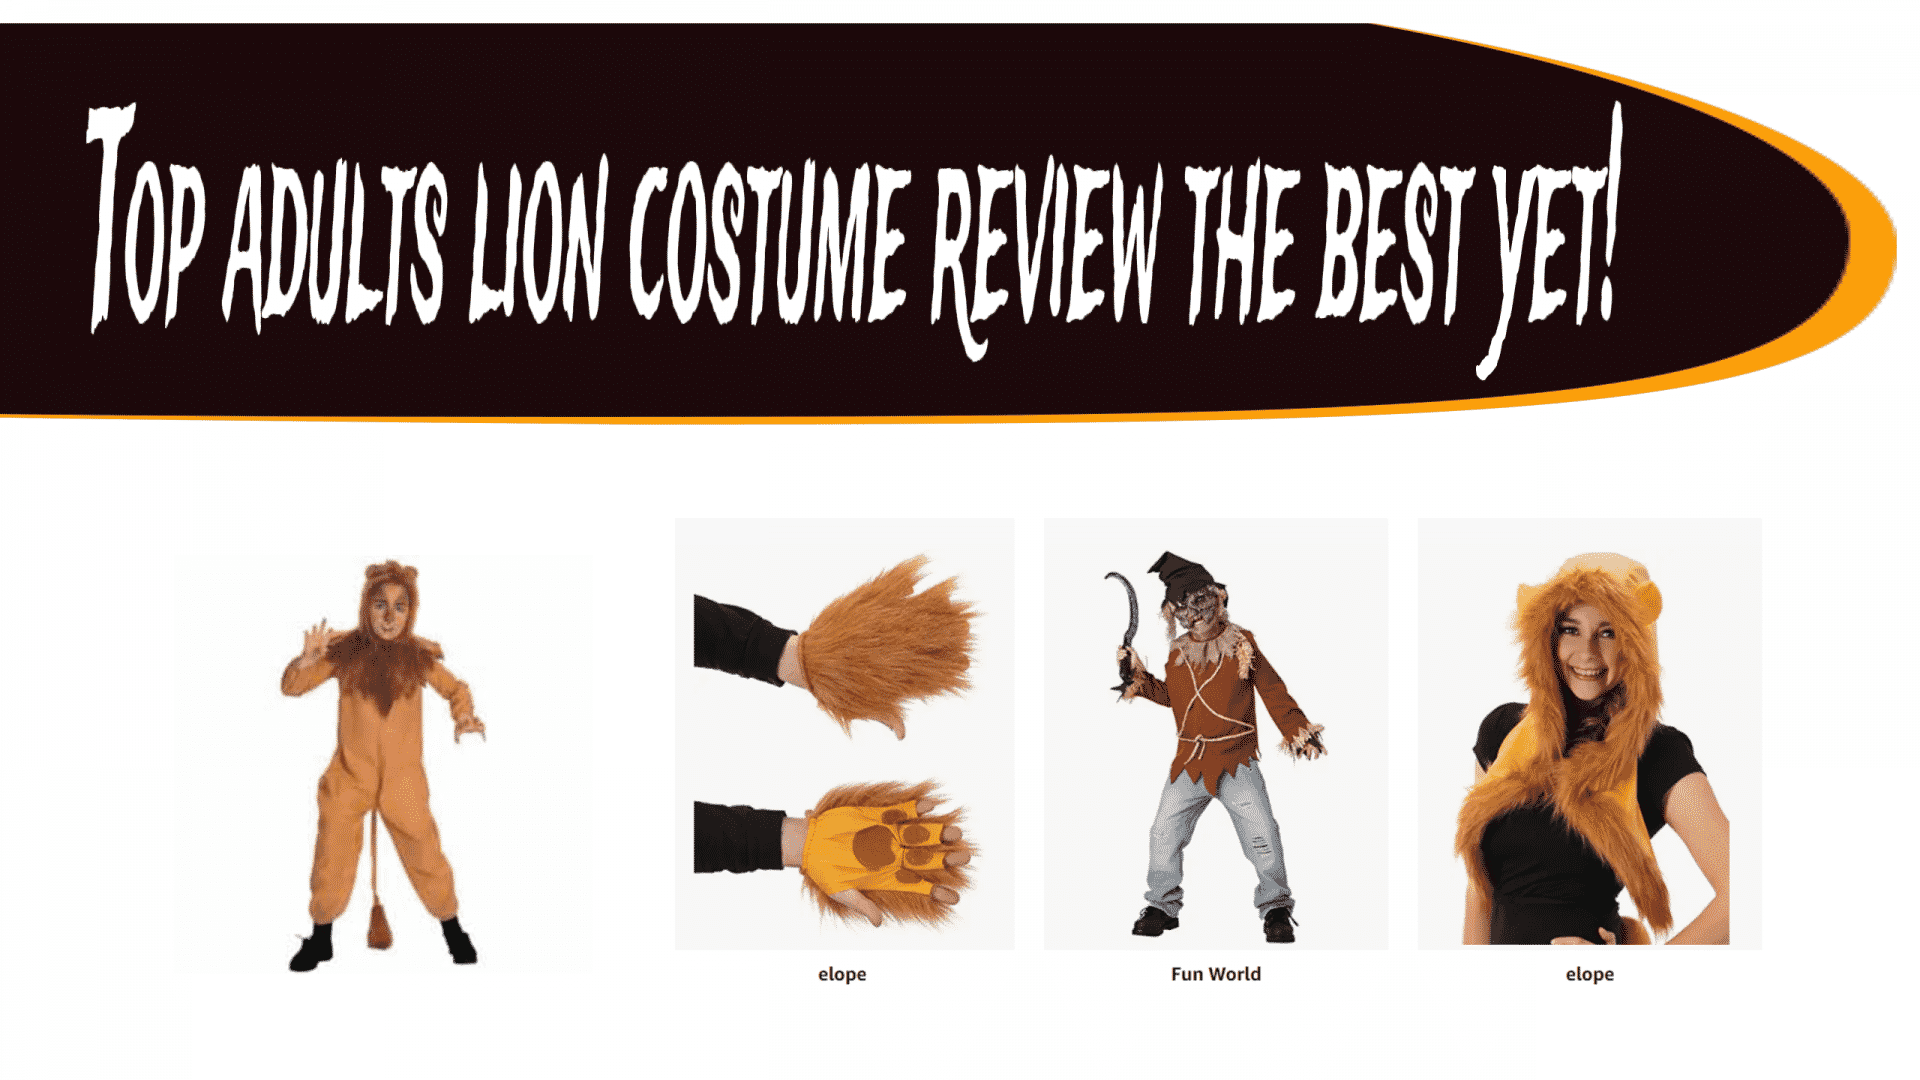 Top adults lion costume review the best yet!